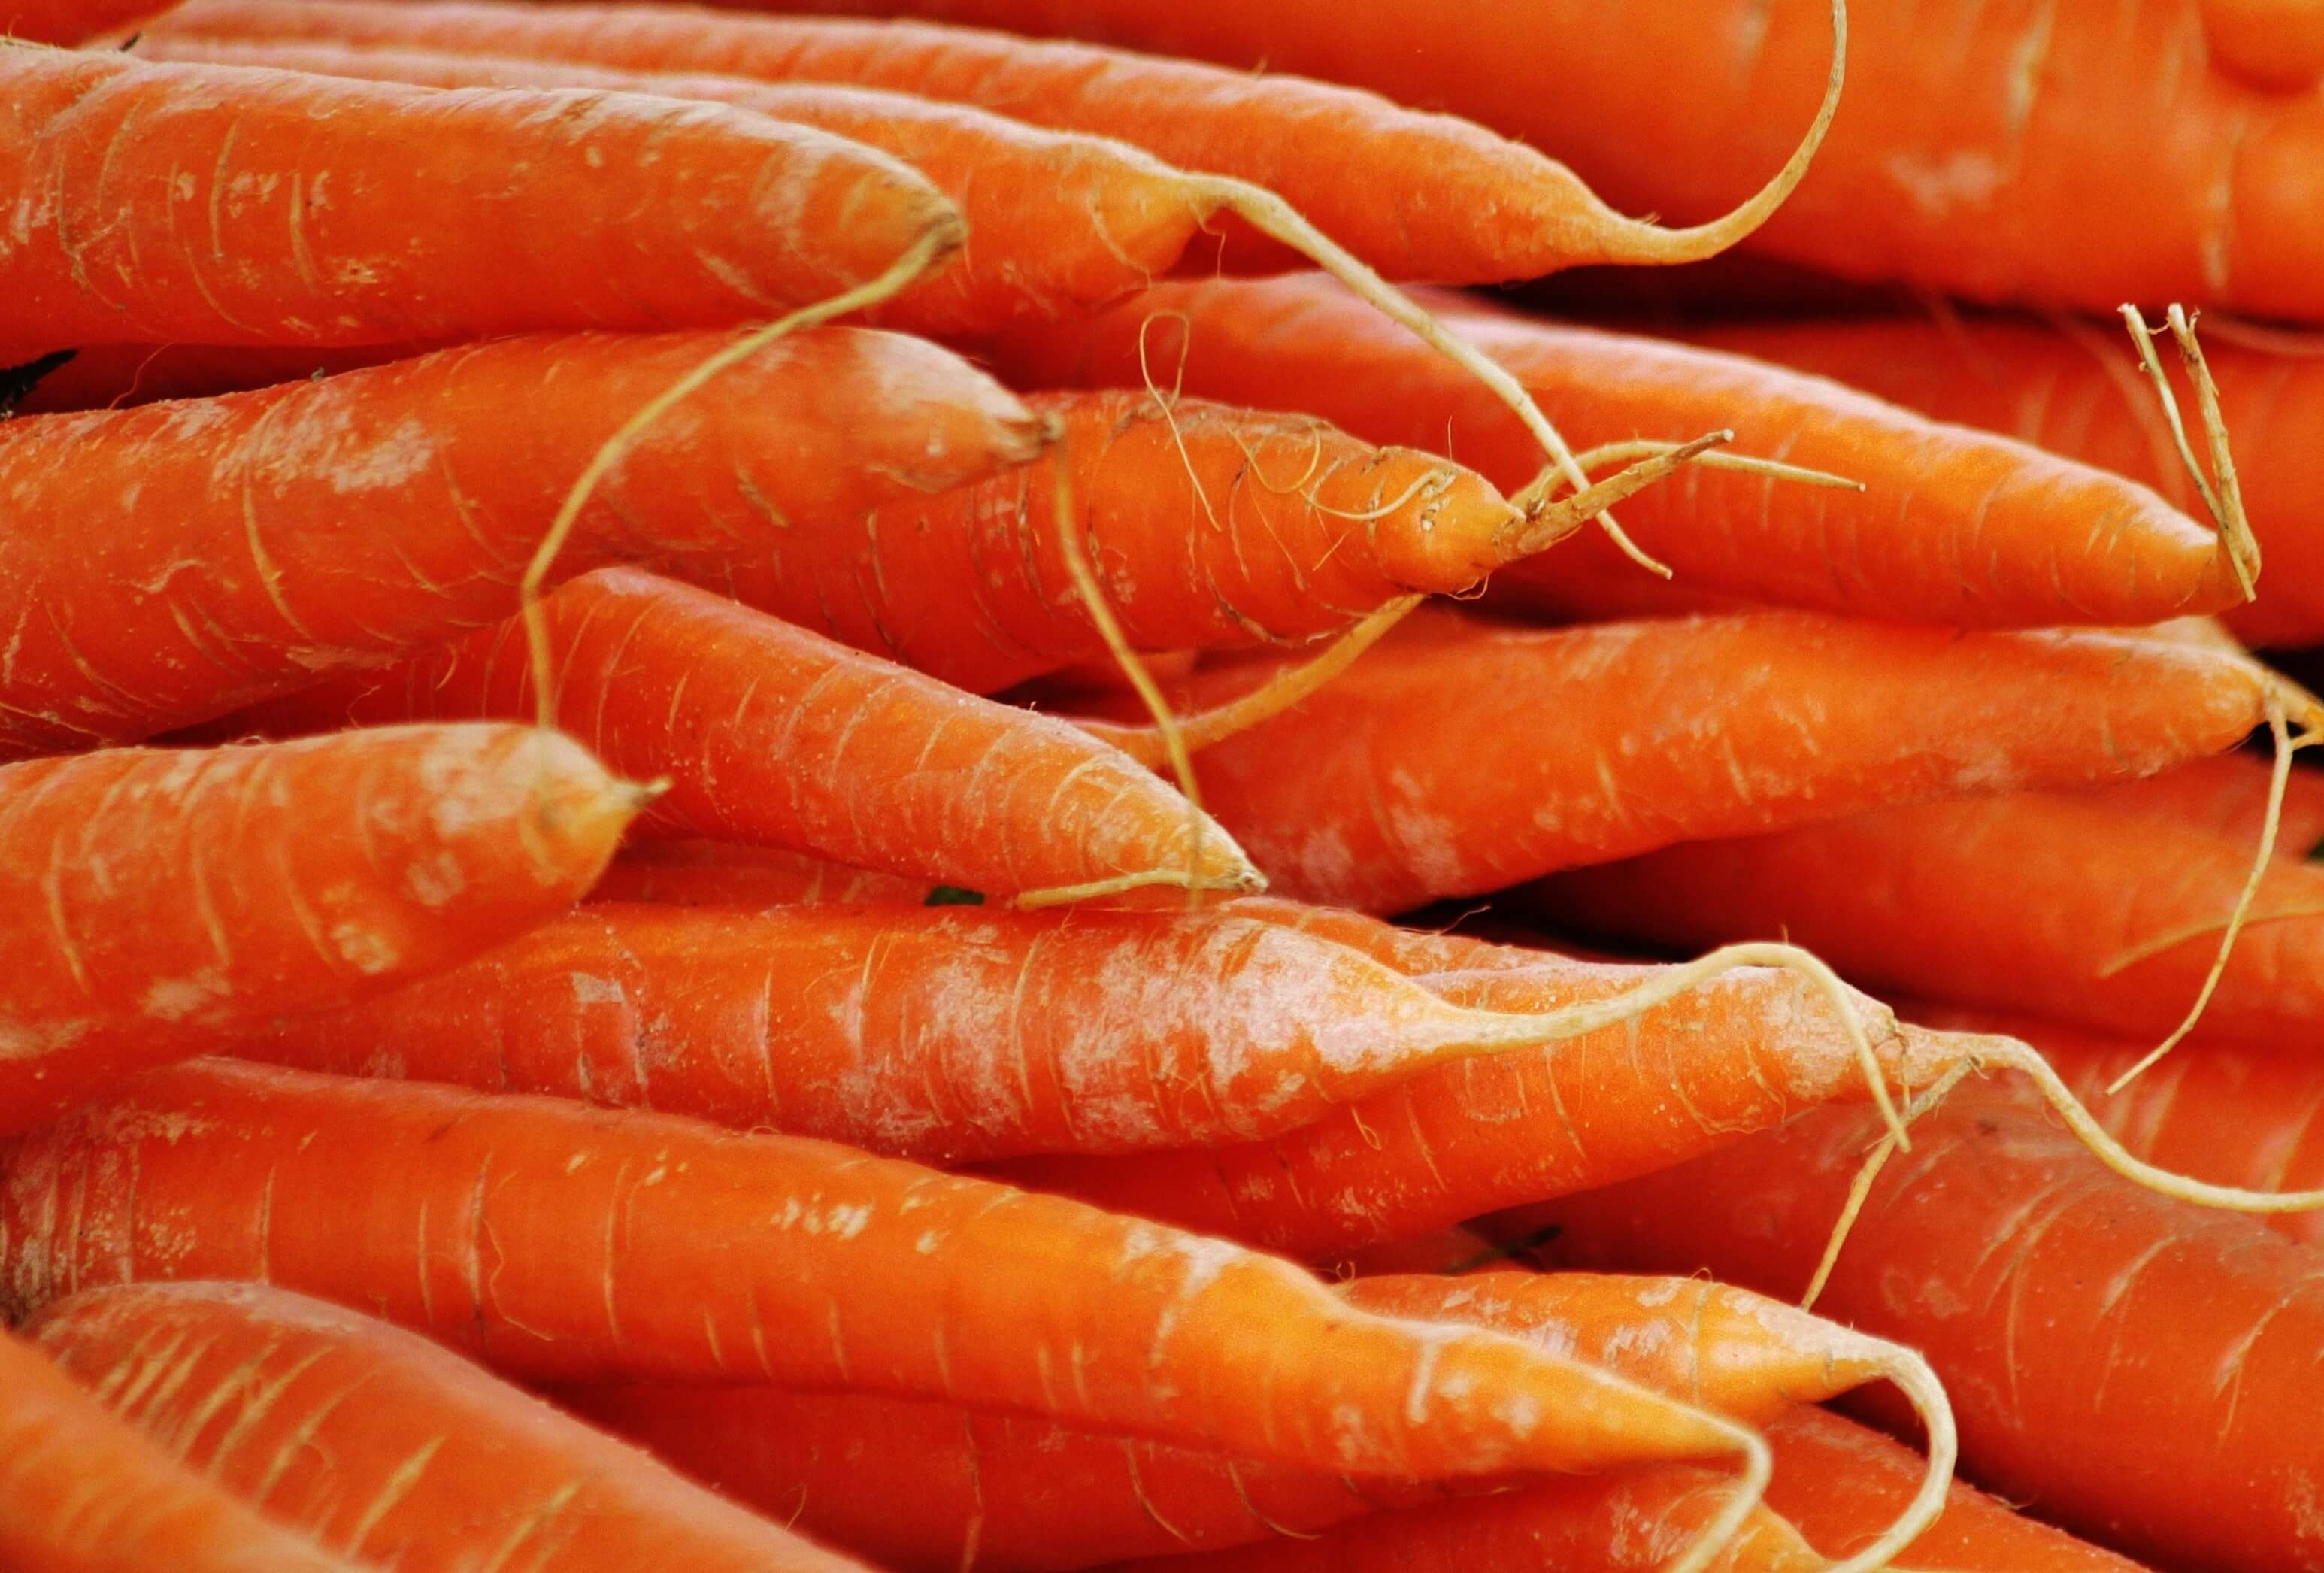 carrots-close-up-crops-54082-2